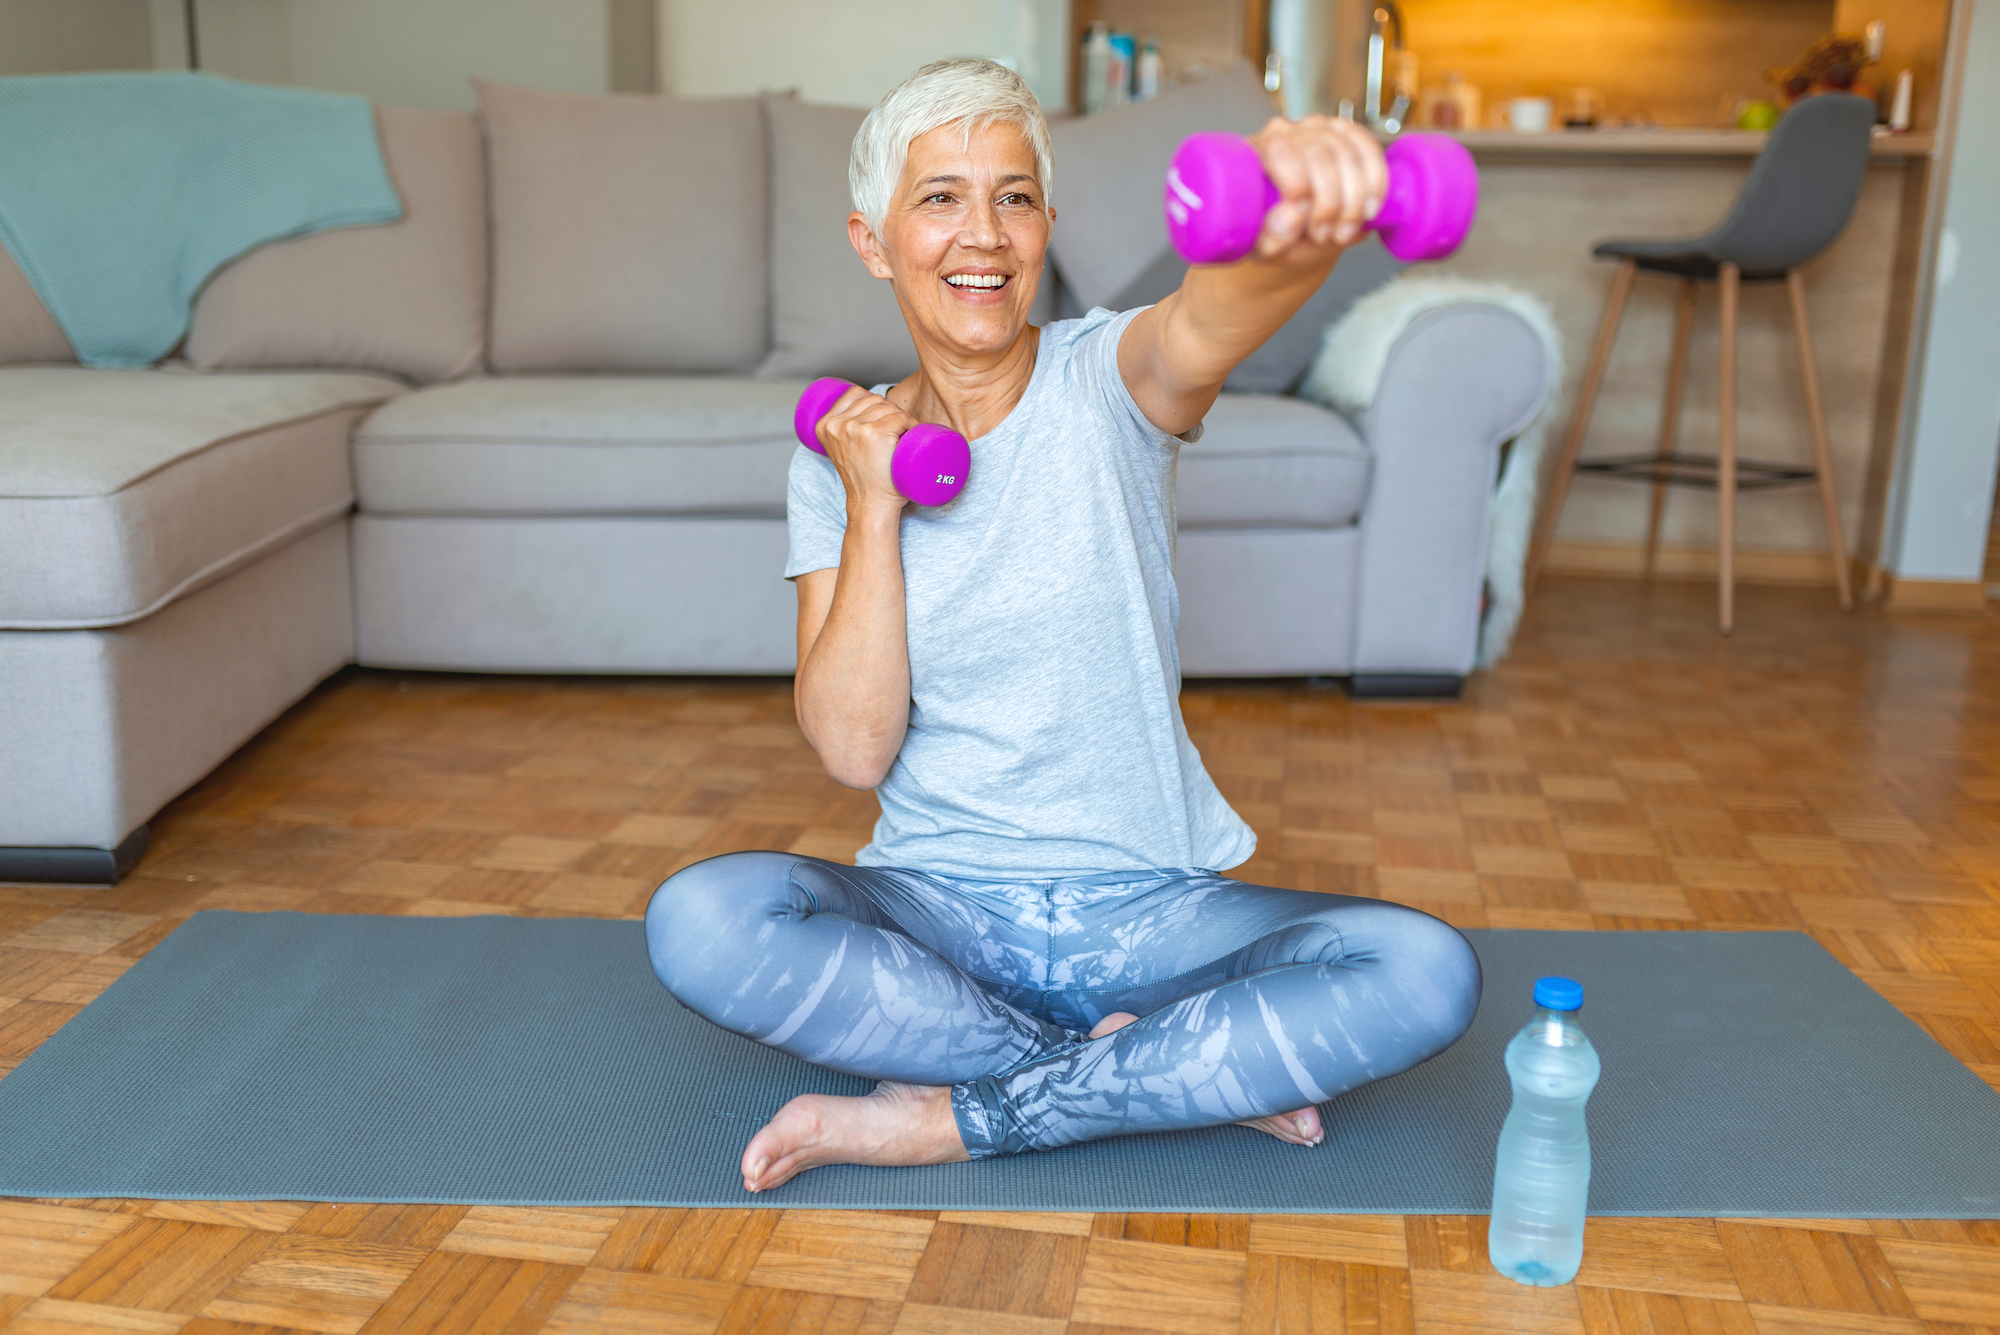 older woman lifting pink dumbbells and sitting on a yoga mat